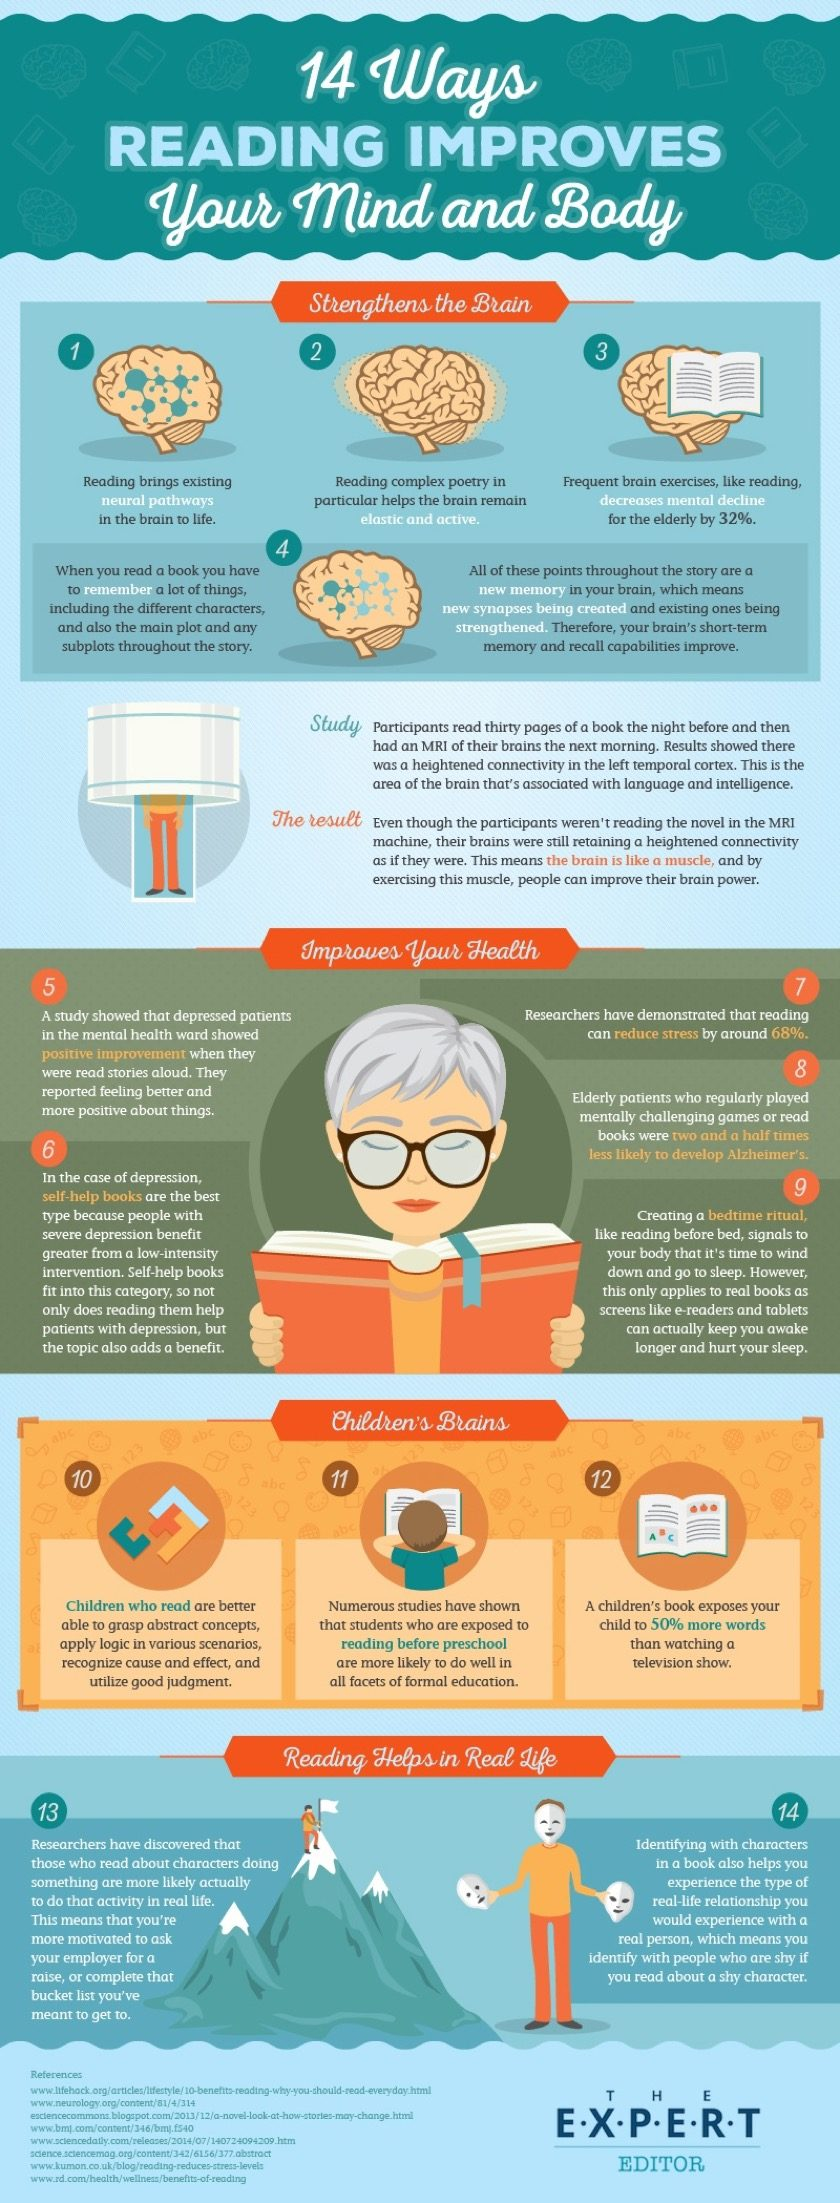 14 ways reading helps your brain and body #infographic